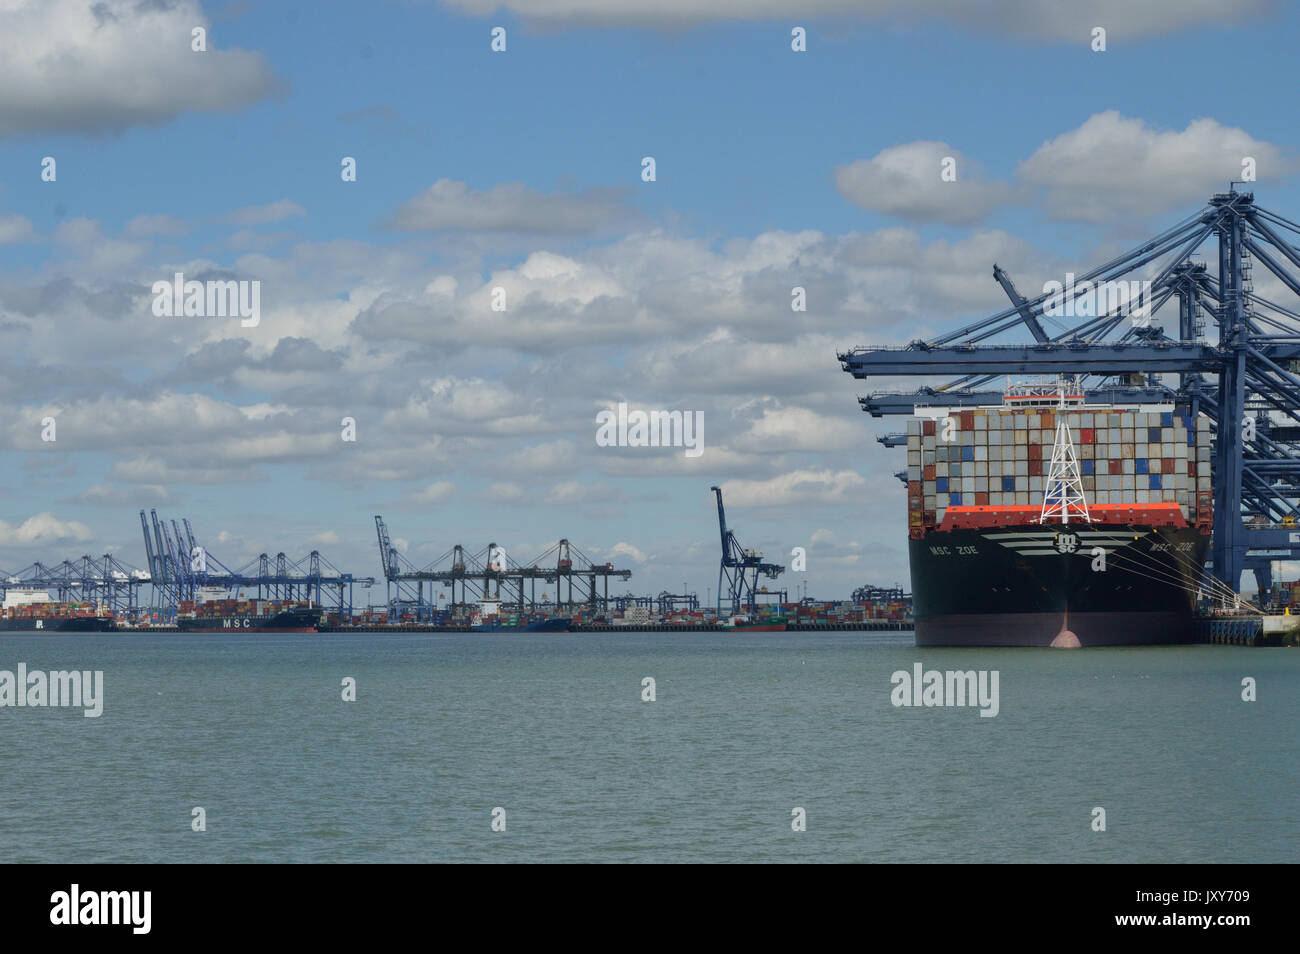 Container Ship MSC Rouge seen alongside at the Port of Felixstowe - Stock Image